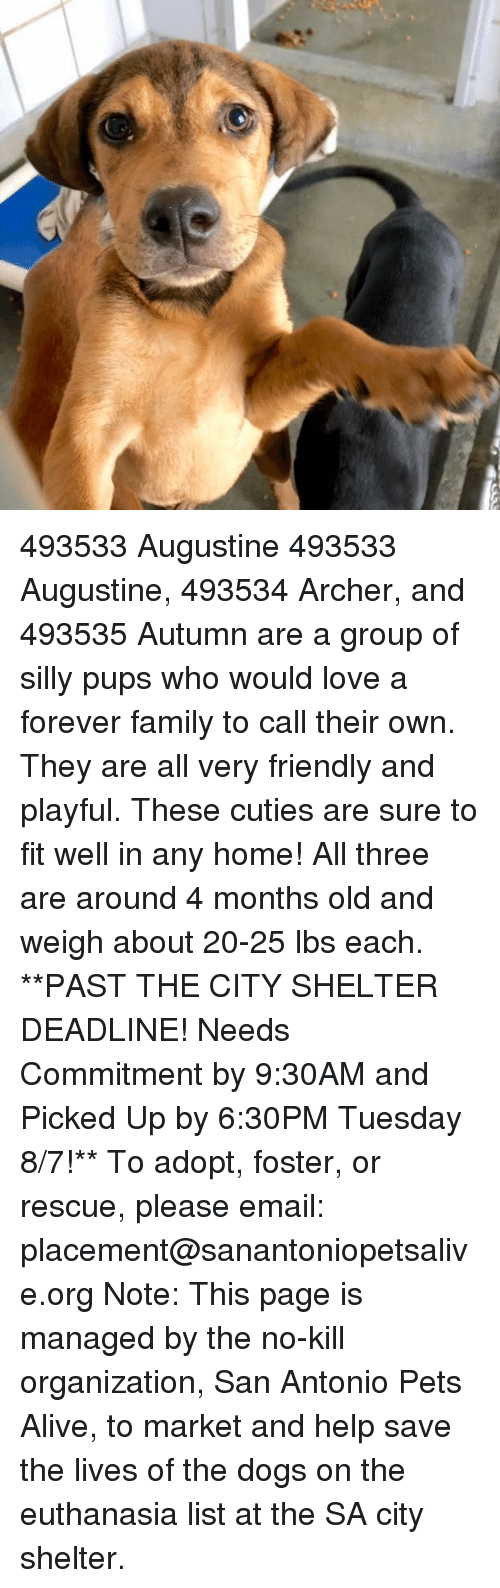 Alive, Dogs, and Family: 493533 Augustine  493533 Augustine, 493534 Archer, and 493535 Autumn are a group of silly pups who would love a forever family to call their own. They are all very friendly and playful. These cuties are sure to fit well in any home! All three are around 4 months old and weigh about 20-25 lbs each.  **PAST THE CITY SHELTER DEADLINE! Needs Commitment by 9:30AM and Picked Up by 6:30PM Tuesday 8/7!** To adopt, foster, or rescue, please email: placement@sanantoniopetsalive.org Note: This page is managed by the no-kill organization, San Antonio Pets Alive, to market and help save the lives of the dogs on the euthanasia list at the SA city shelter.